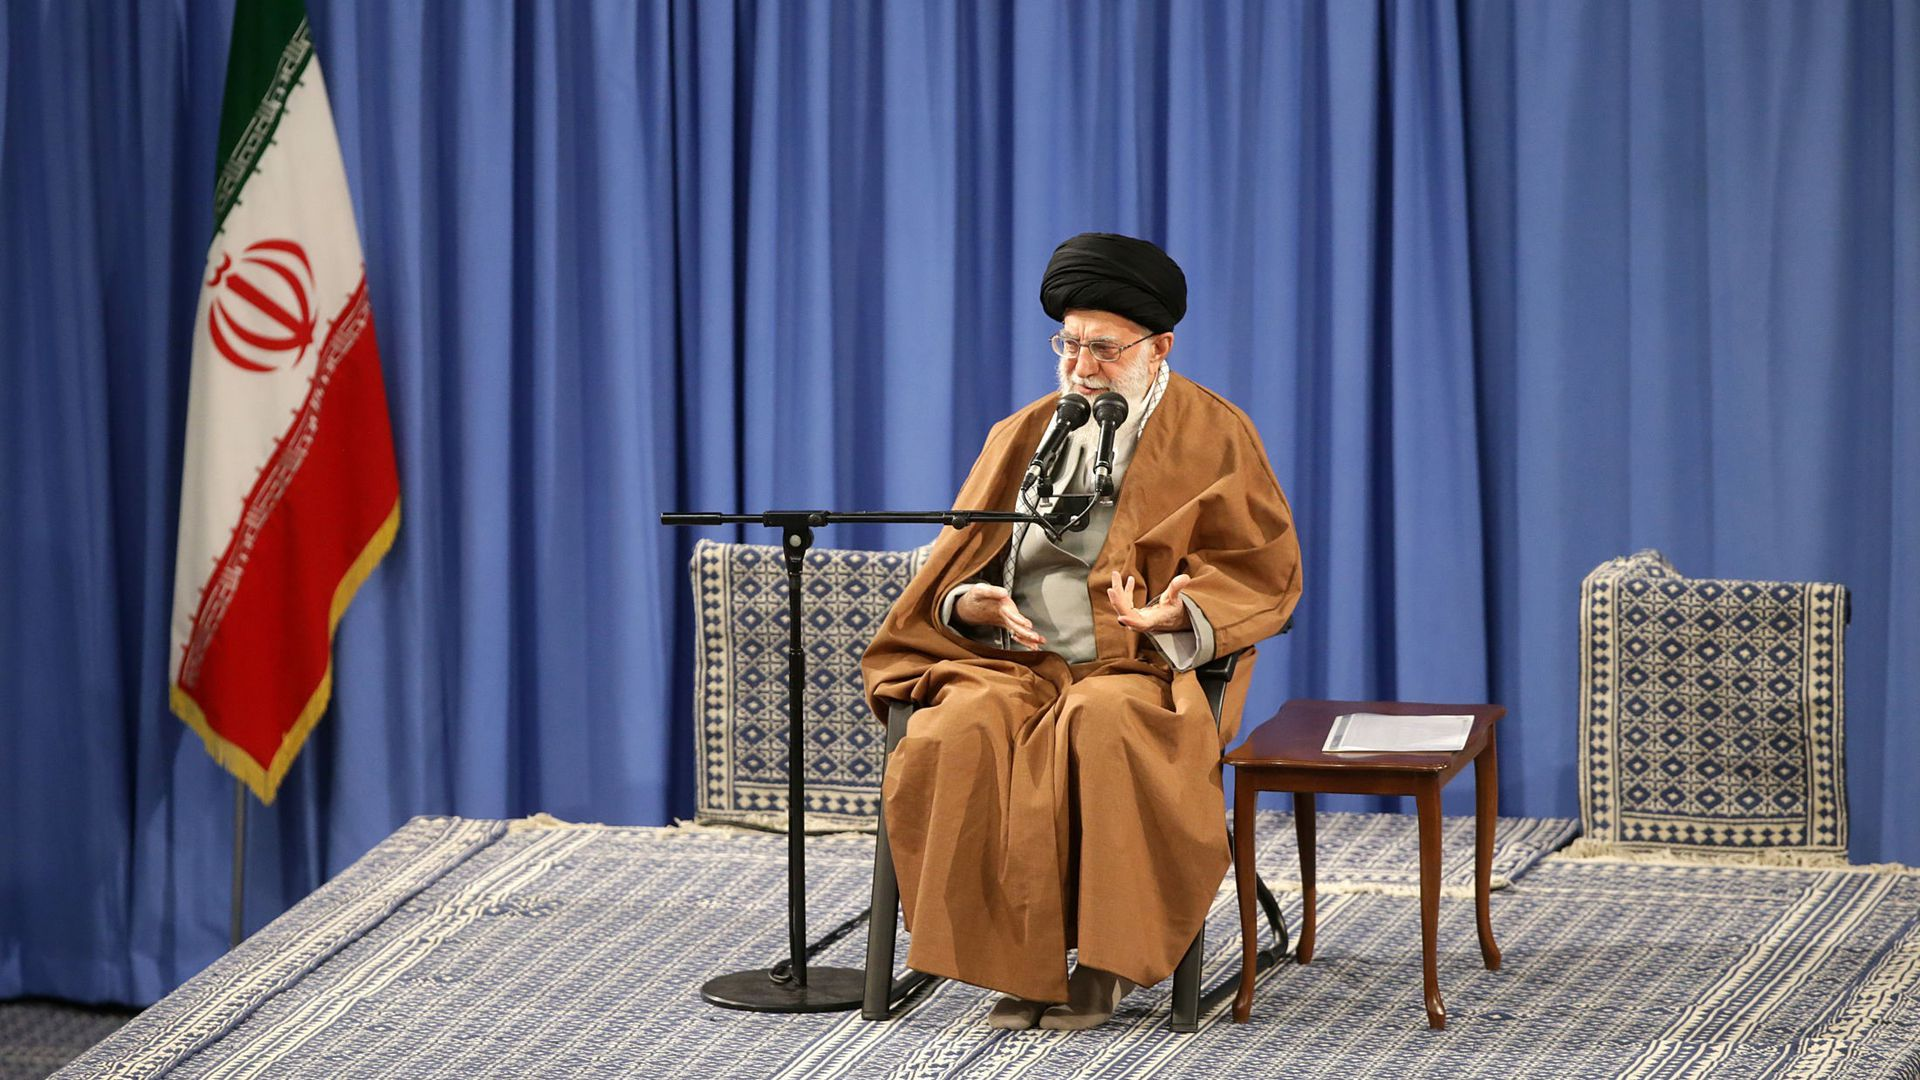 Khamenei seated in a chair on stage, next to the Iranian flag